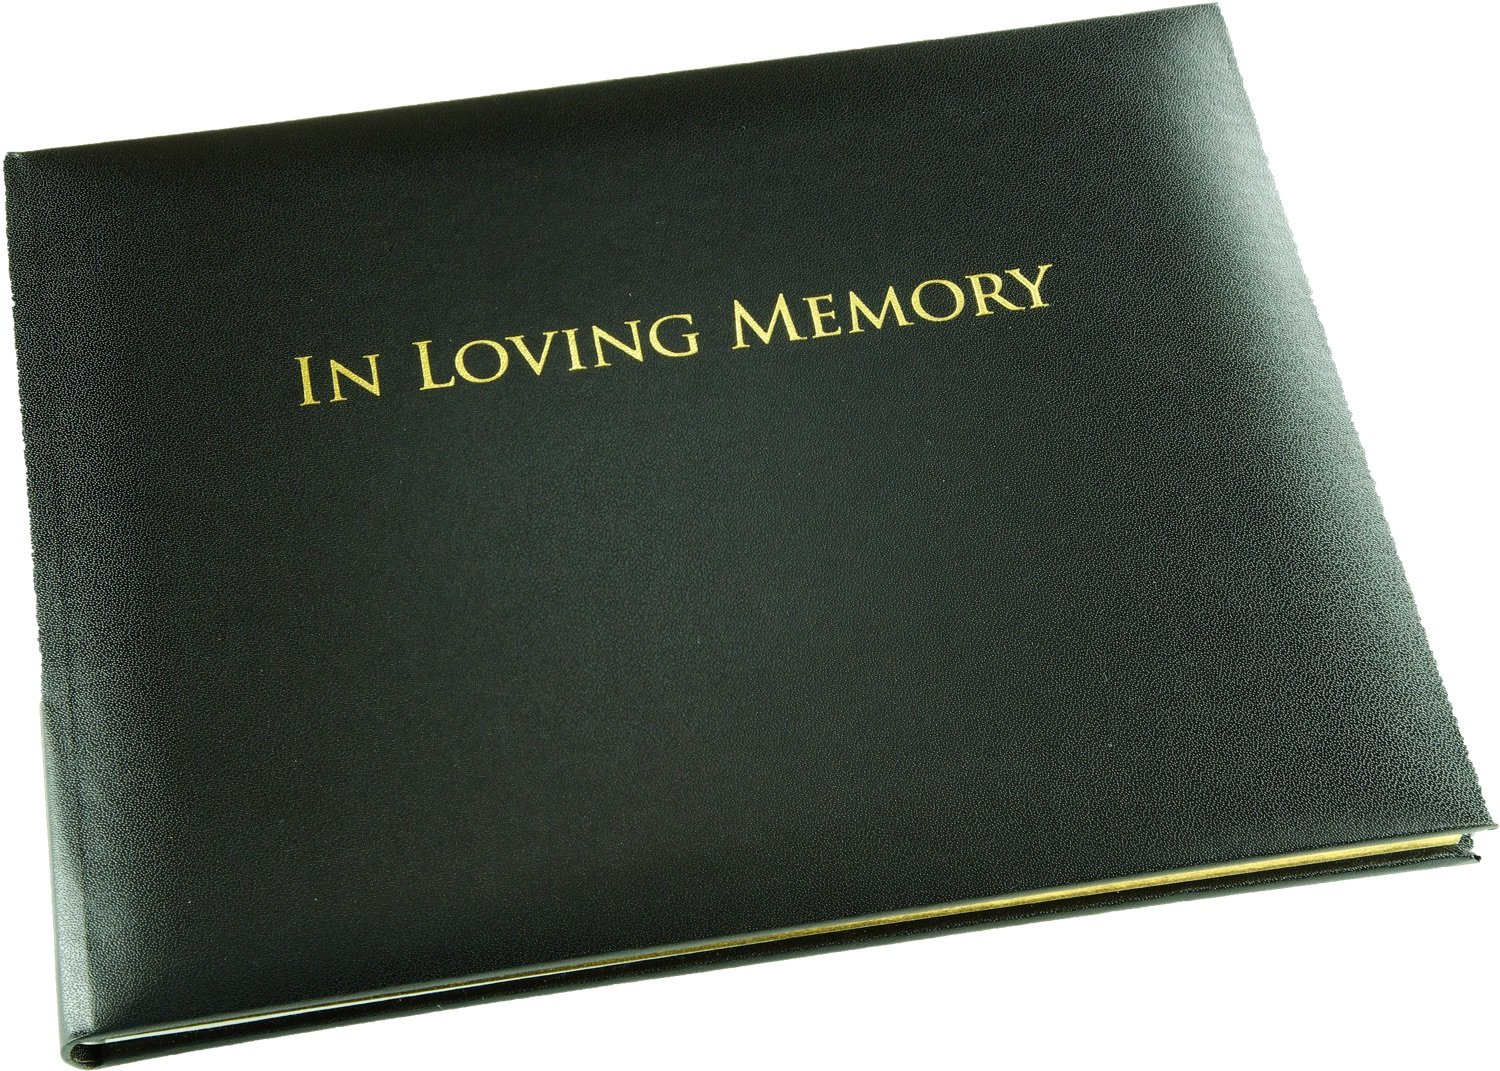 In Loving Memory Book - Black - Funeral Guest Book - Memorial Book - Presentation Boxed - (LARGE SIZE - Width 10.5 inch - Height 7.6 inch - Depth 0.6 inch)